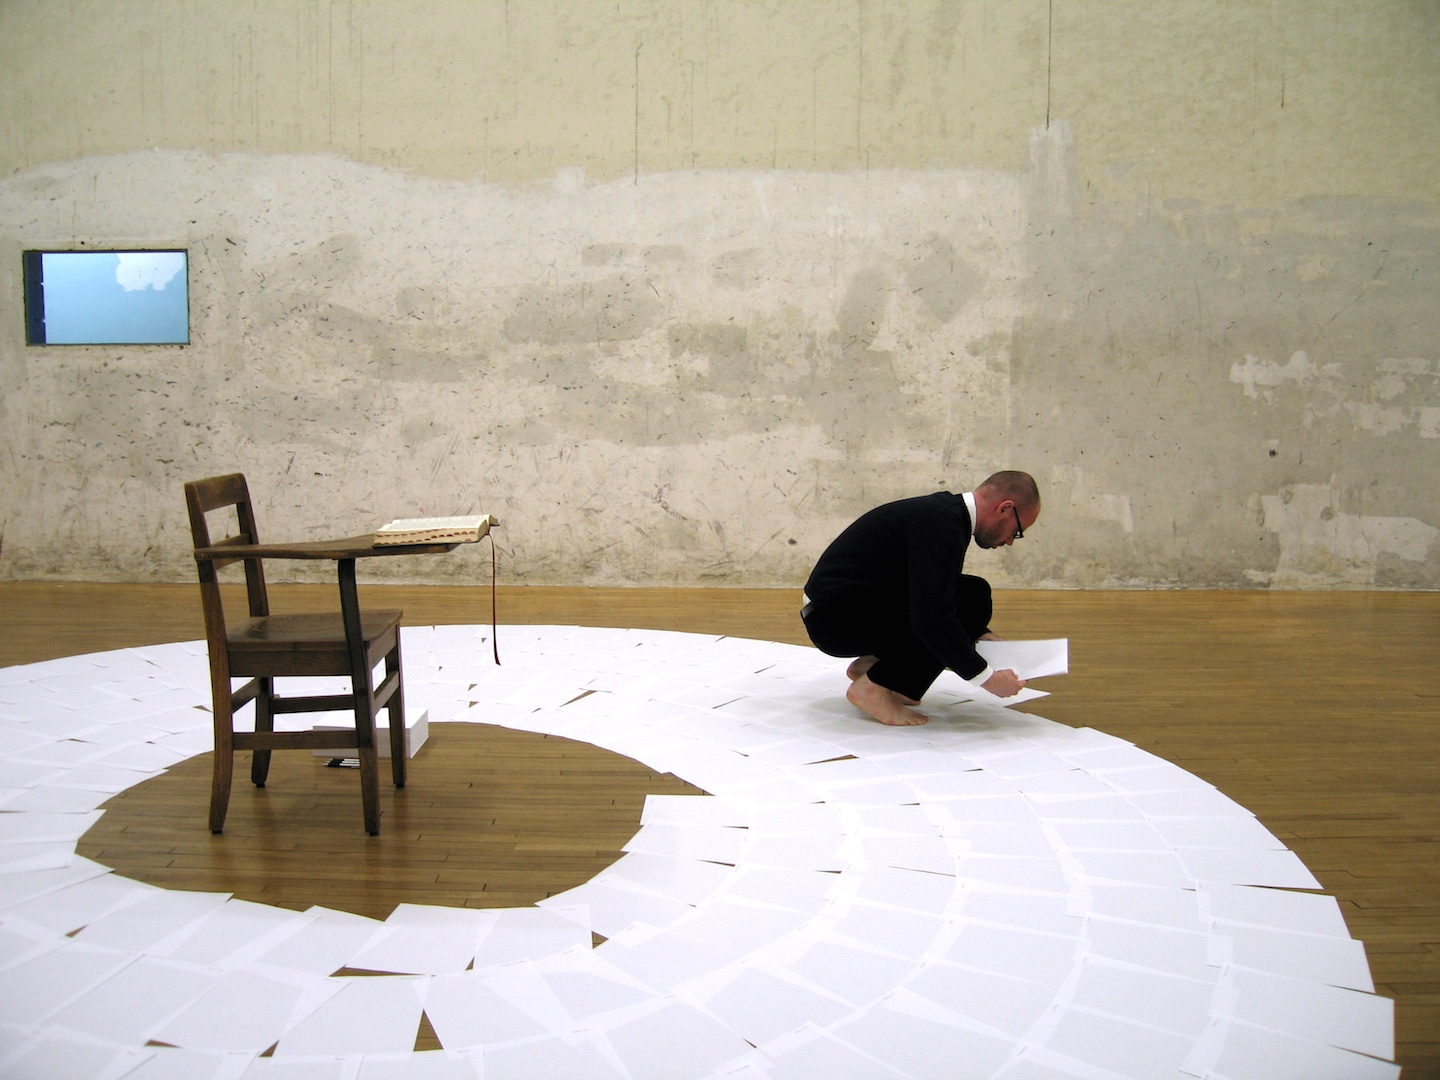 Indexical Scale , 2005  Performance Art